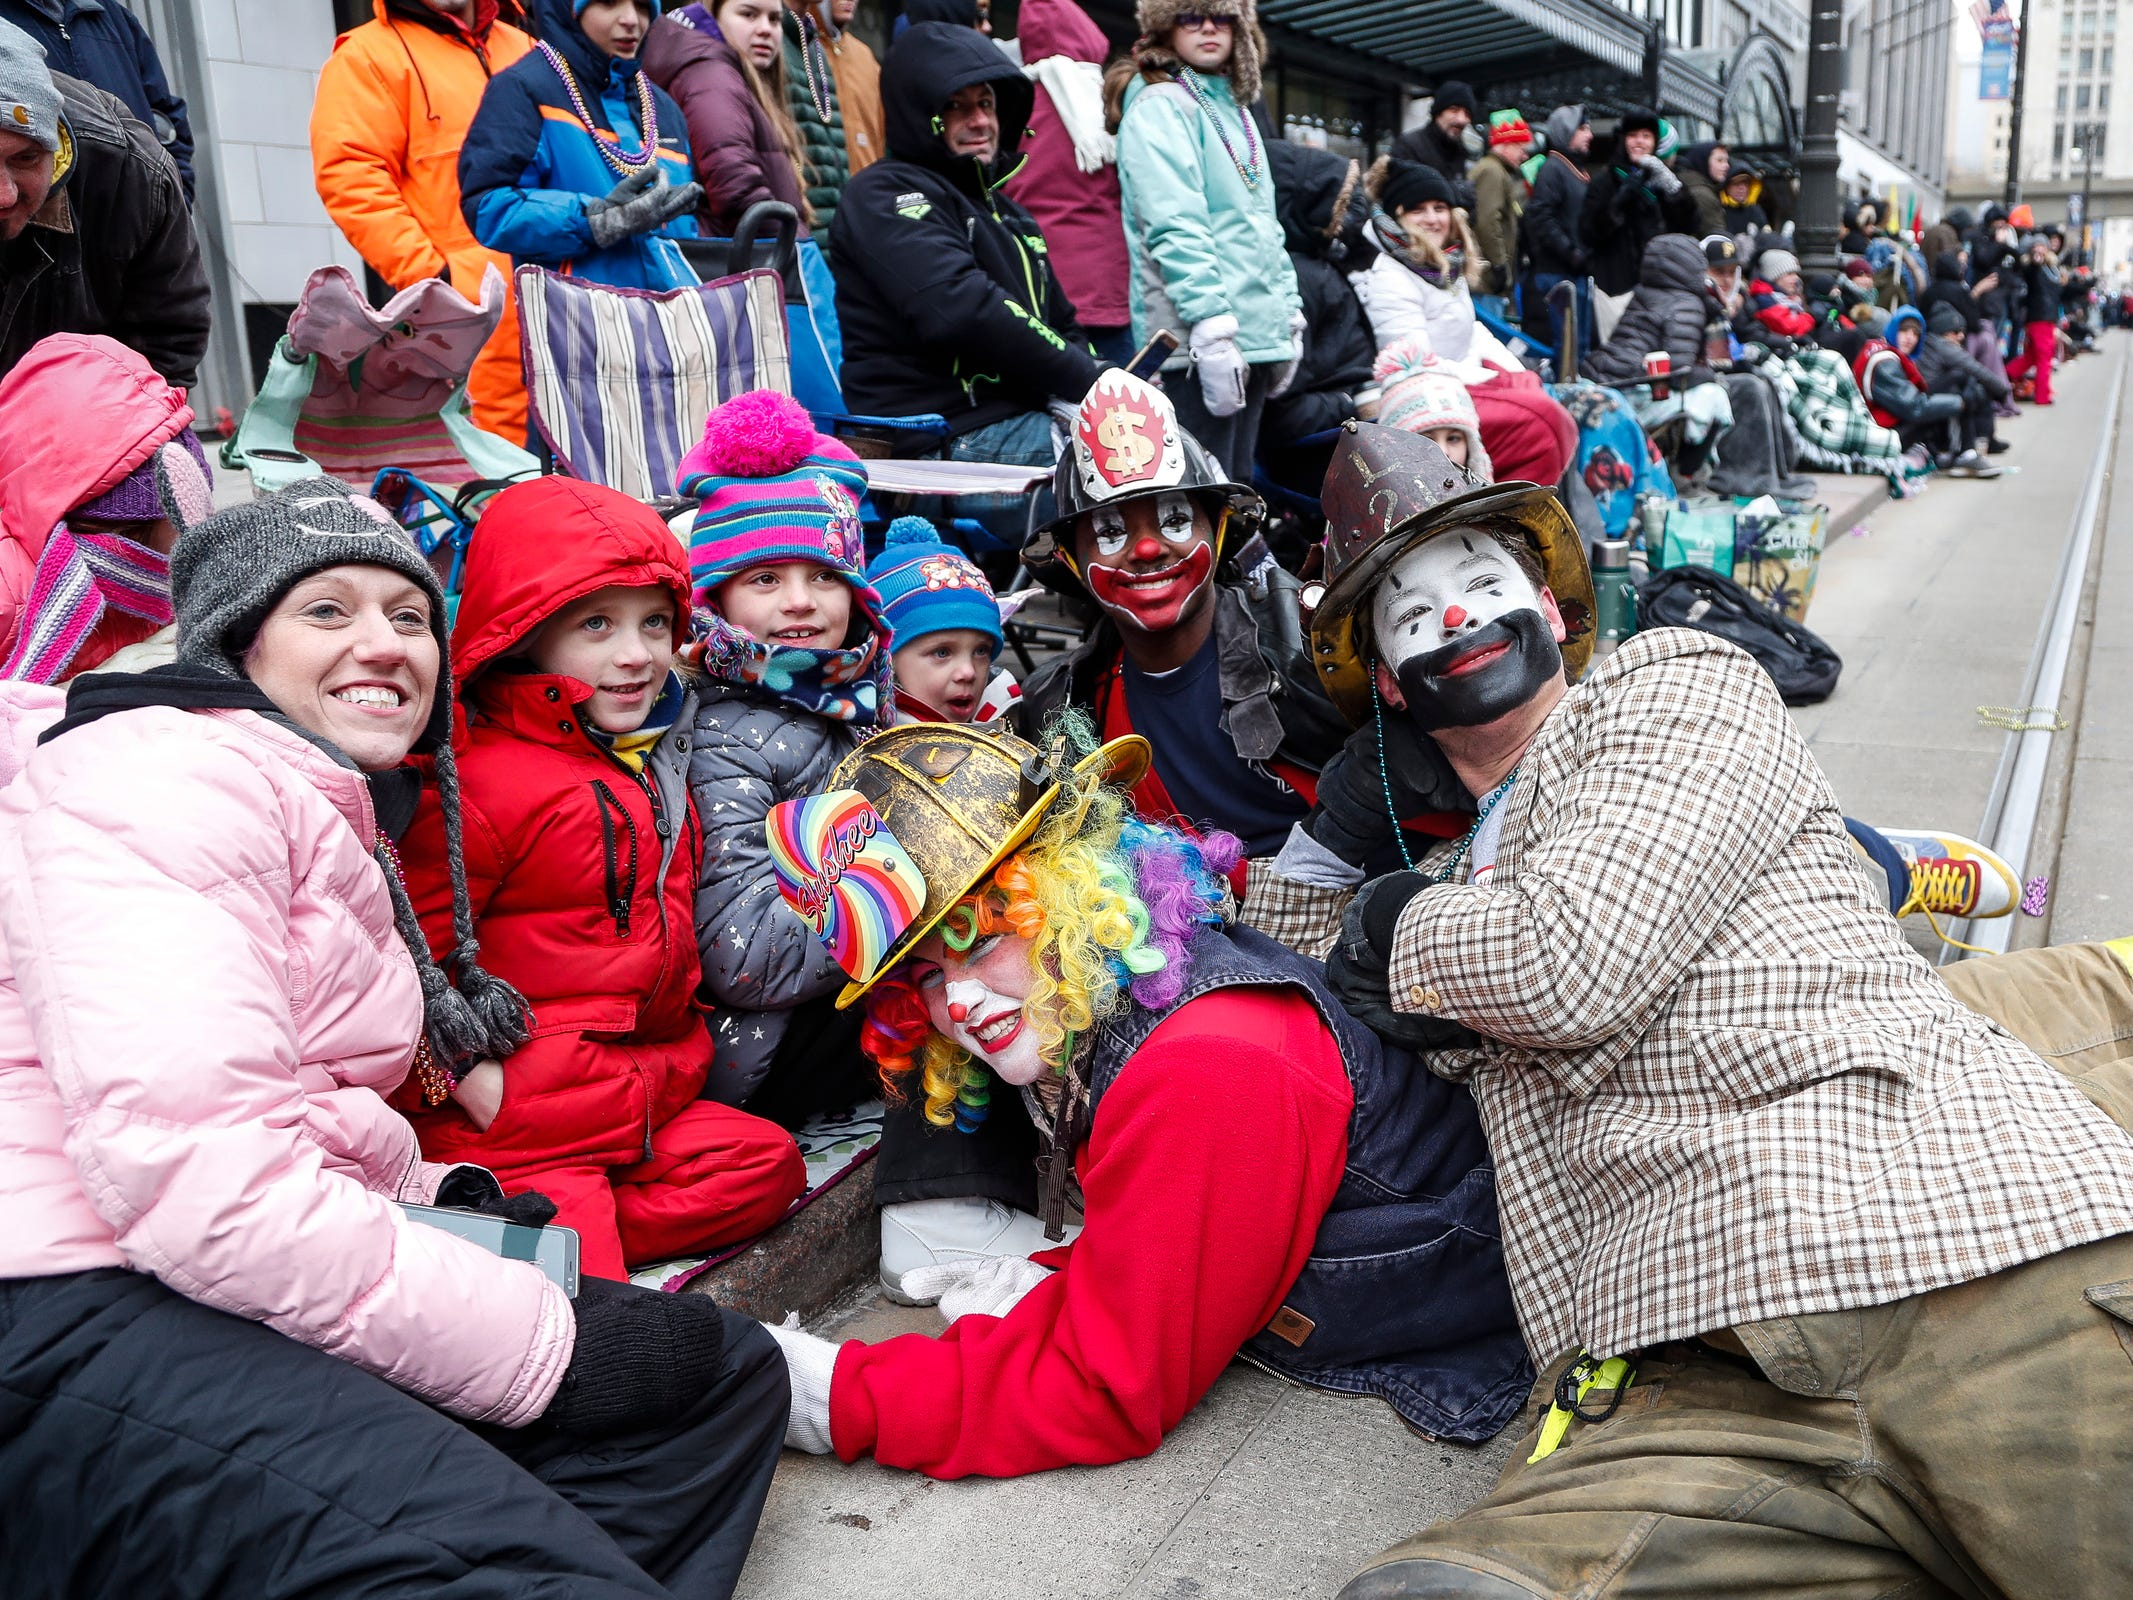 Detroit Fire Department clowns pose for a photo with spectators during the 92nd America's Thanksgiving Day Parade in Detroit, Thursday, Nov. 22, 2018.